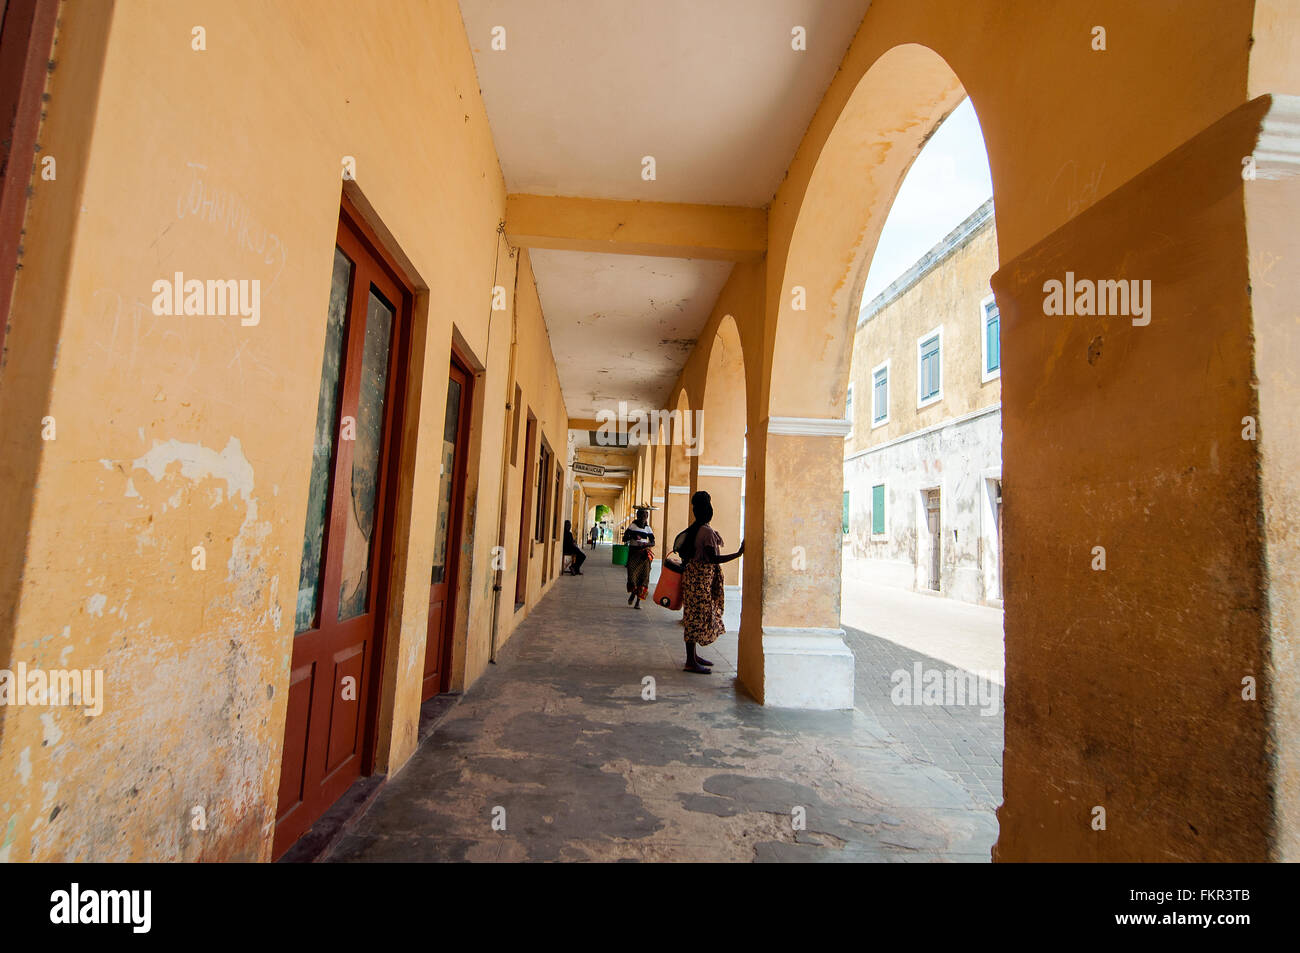 Arcade coloniale, Ilha de Mozambique, Nampula, Mozambique Photo Stock